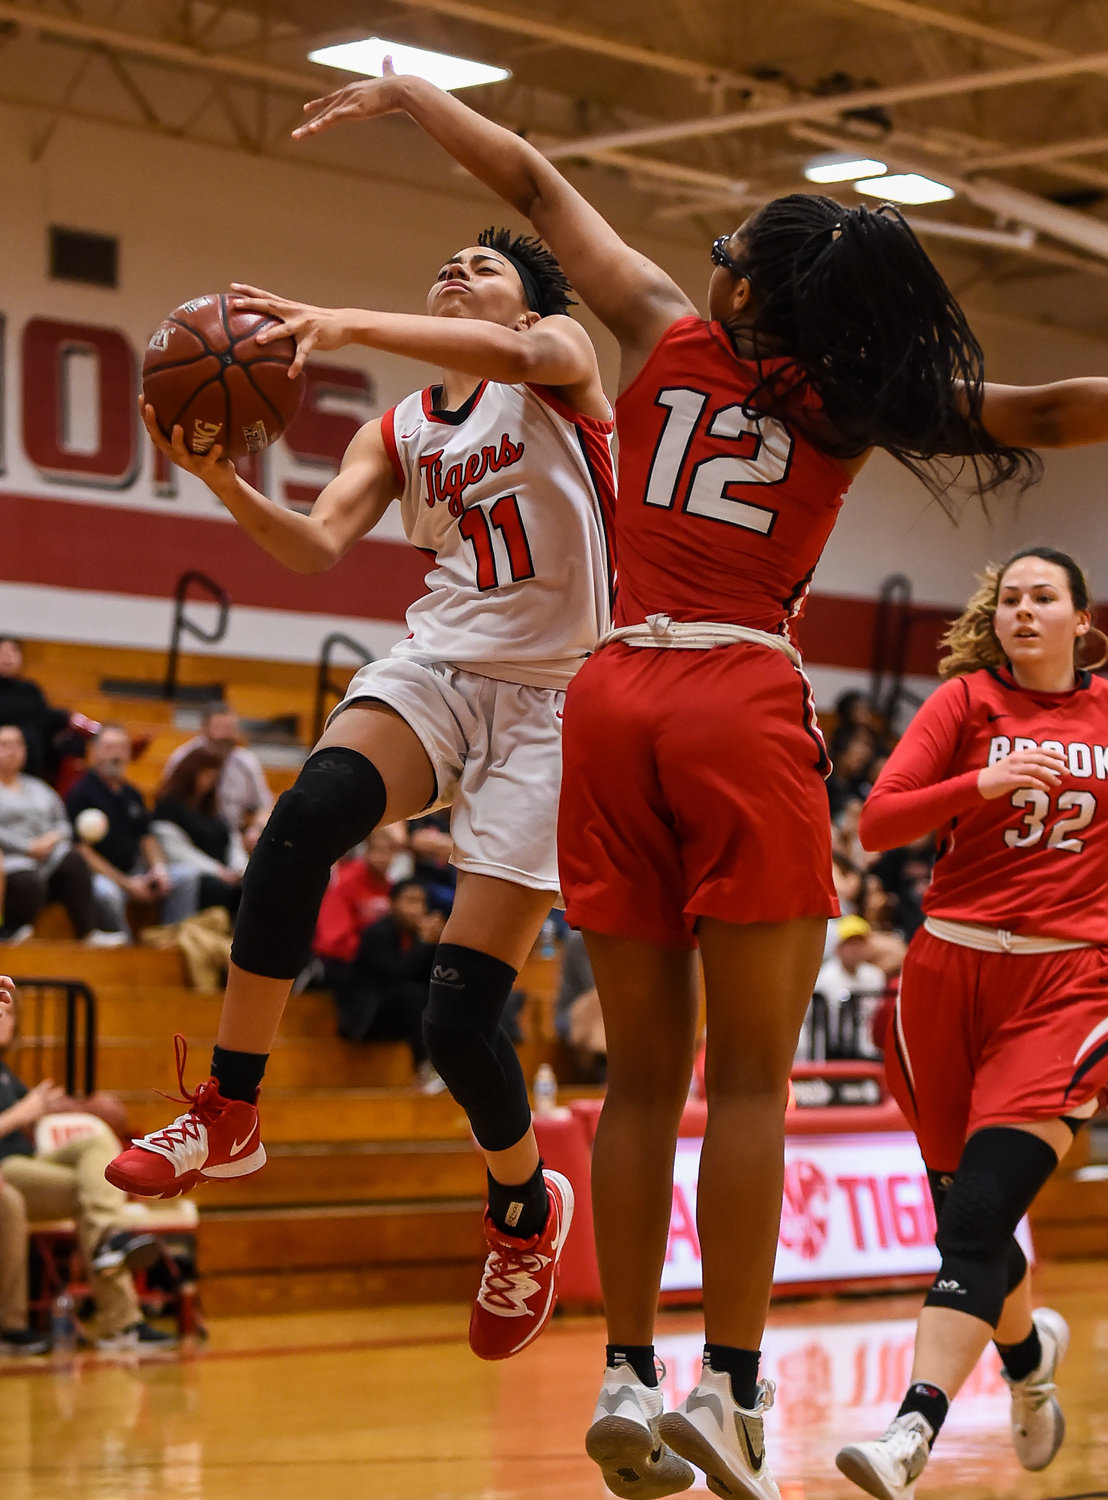 Katy Tx. Dec. 10, 2019: Katy's Allana Thompson (11) drives up the lane to the basket guarded by Clear Brooks Hailey Henry (12) during a non-district basketball game between Katy Tigers and Clear Brook Wolverines at Katy HS.  (Photo by Mark Goodman / Katy Times)